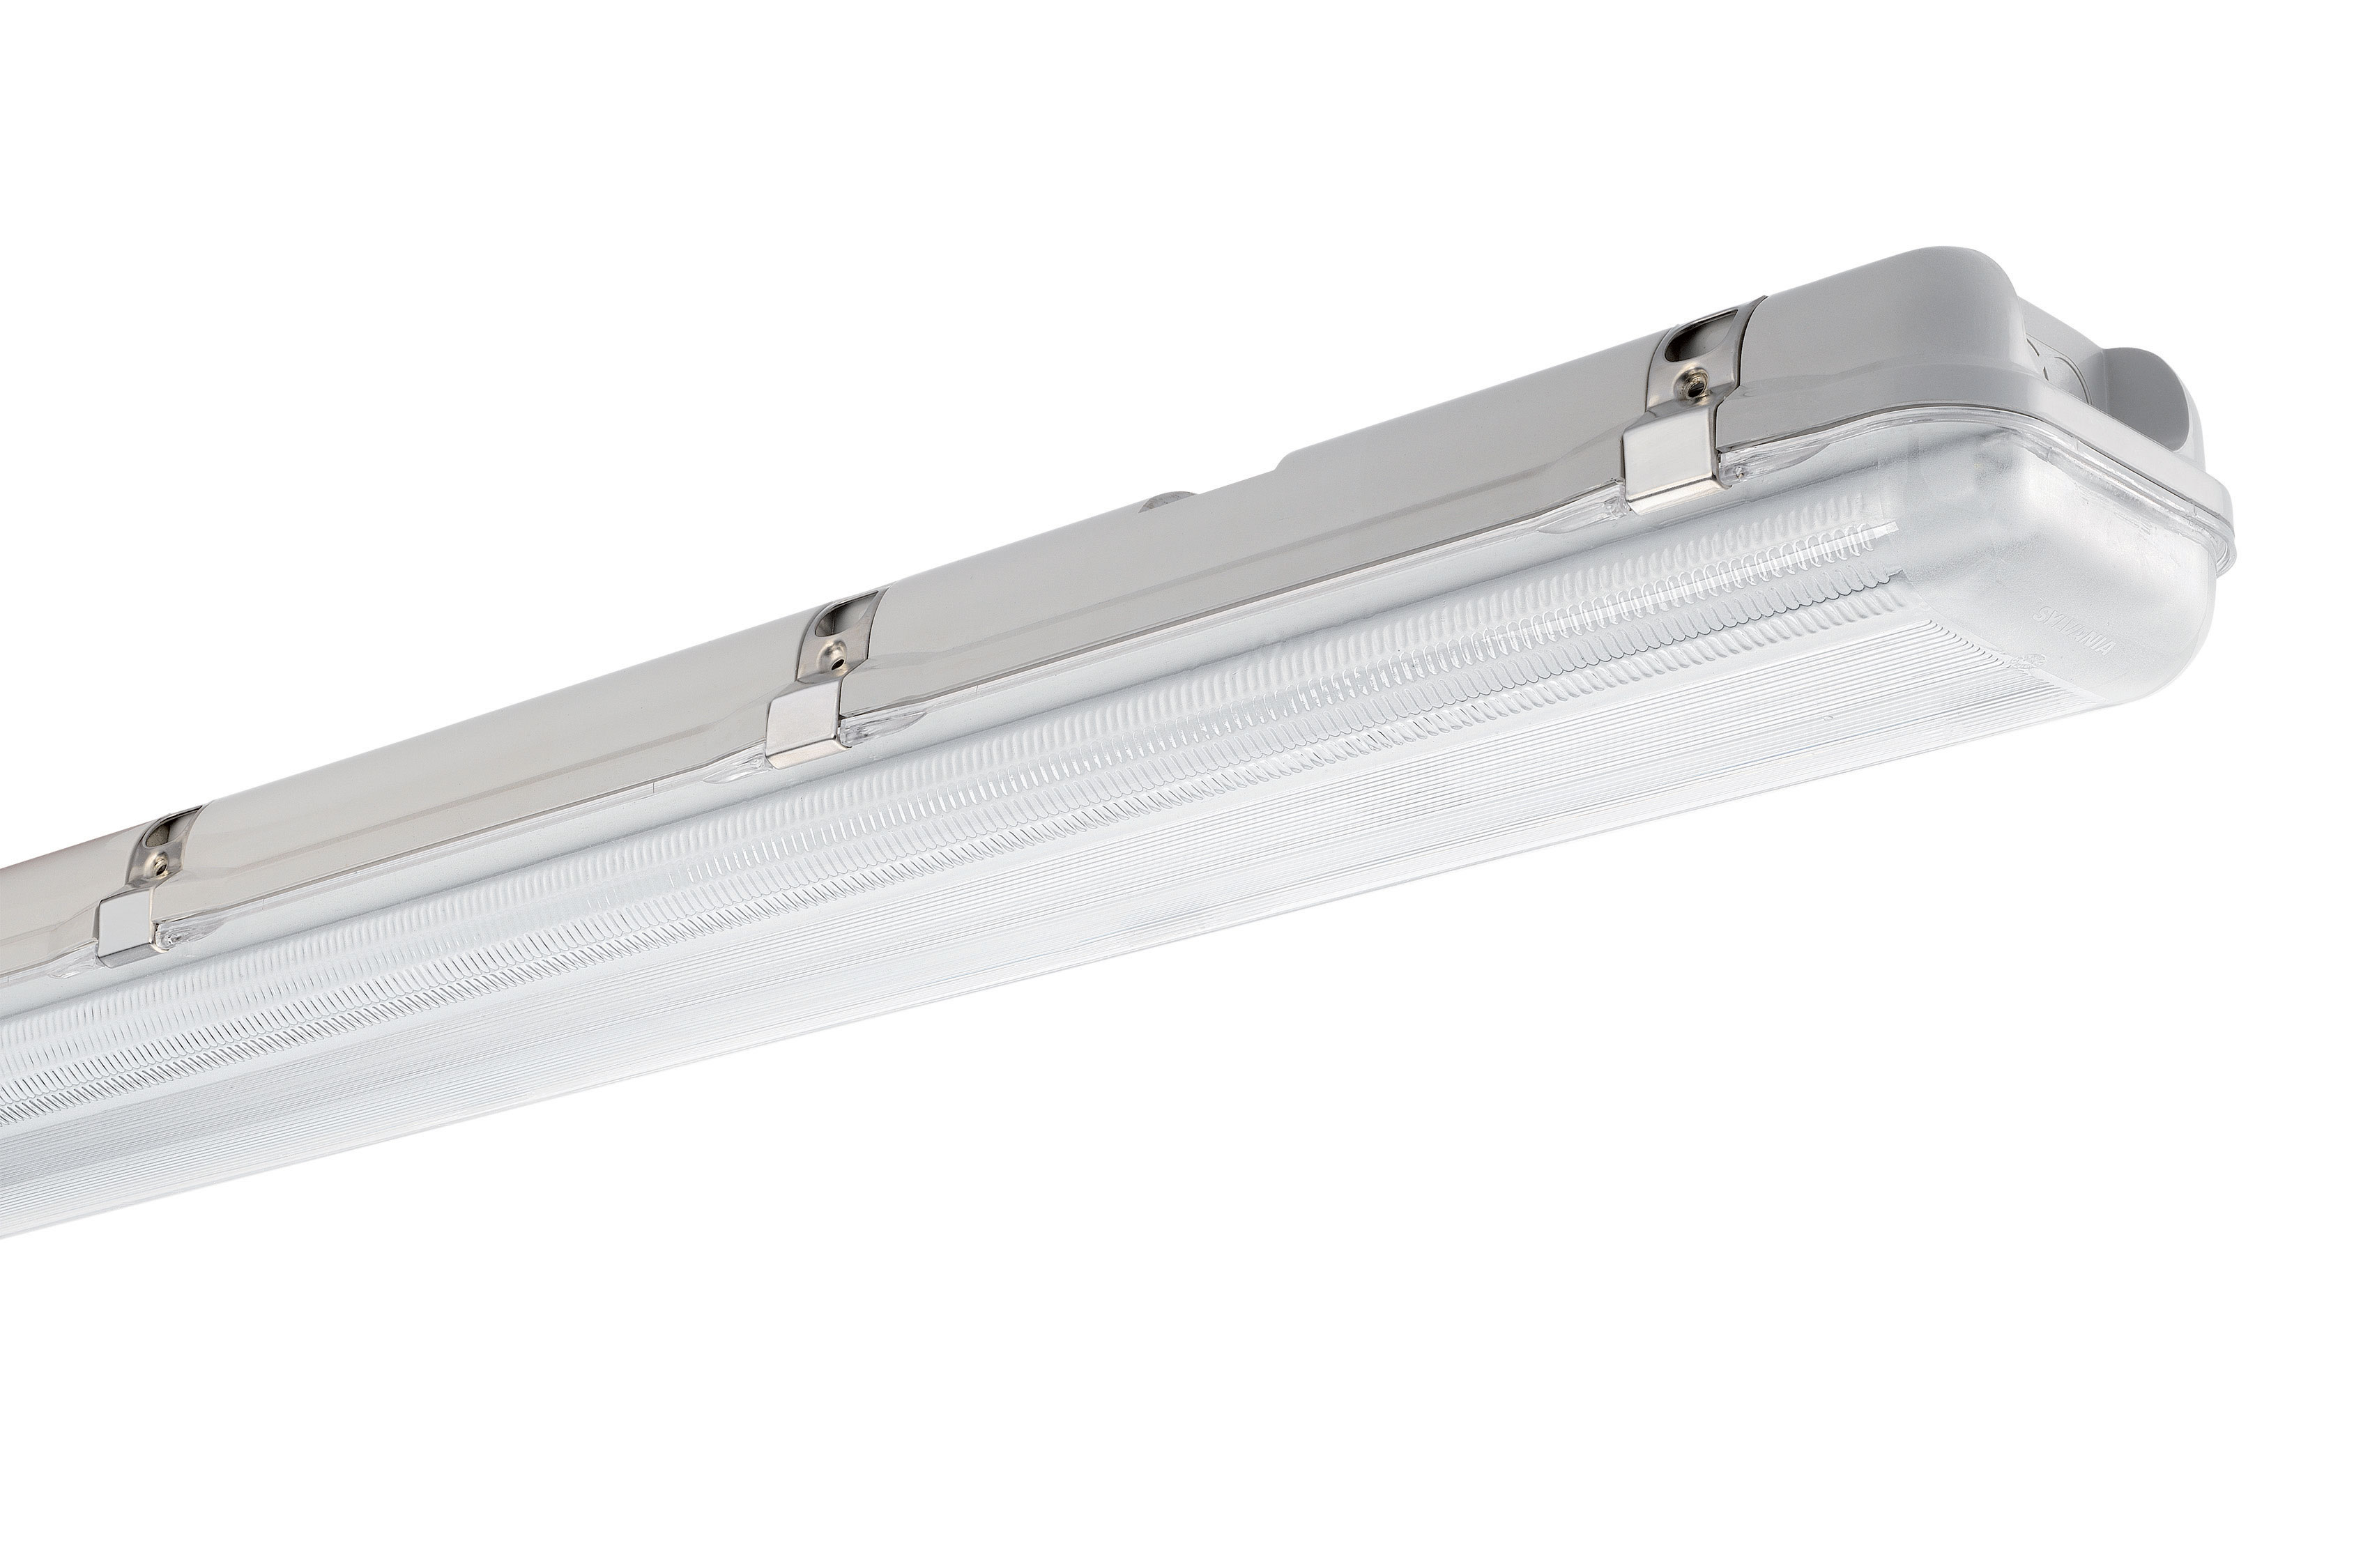 Plafoniere Per Lampade Germicide : Led sylproof superia g sylvania lighting solutions